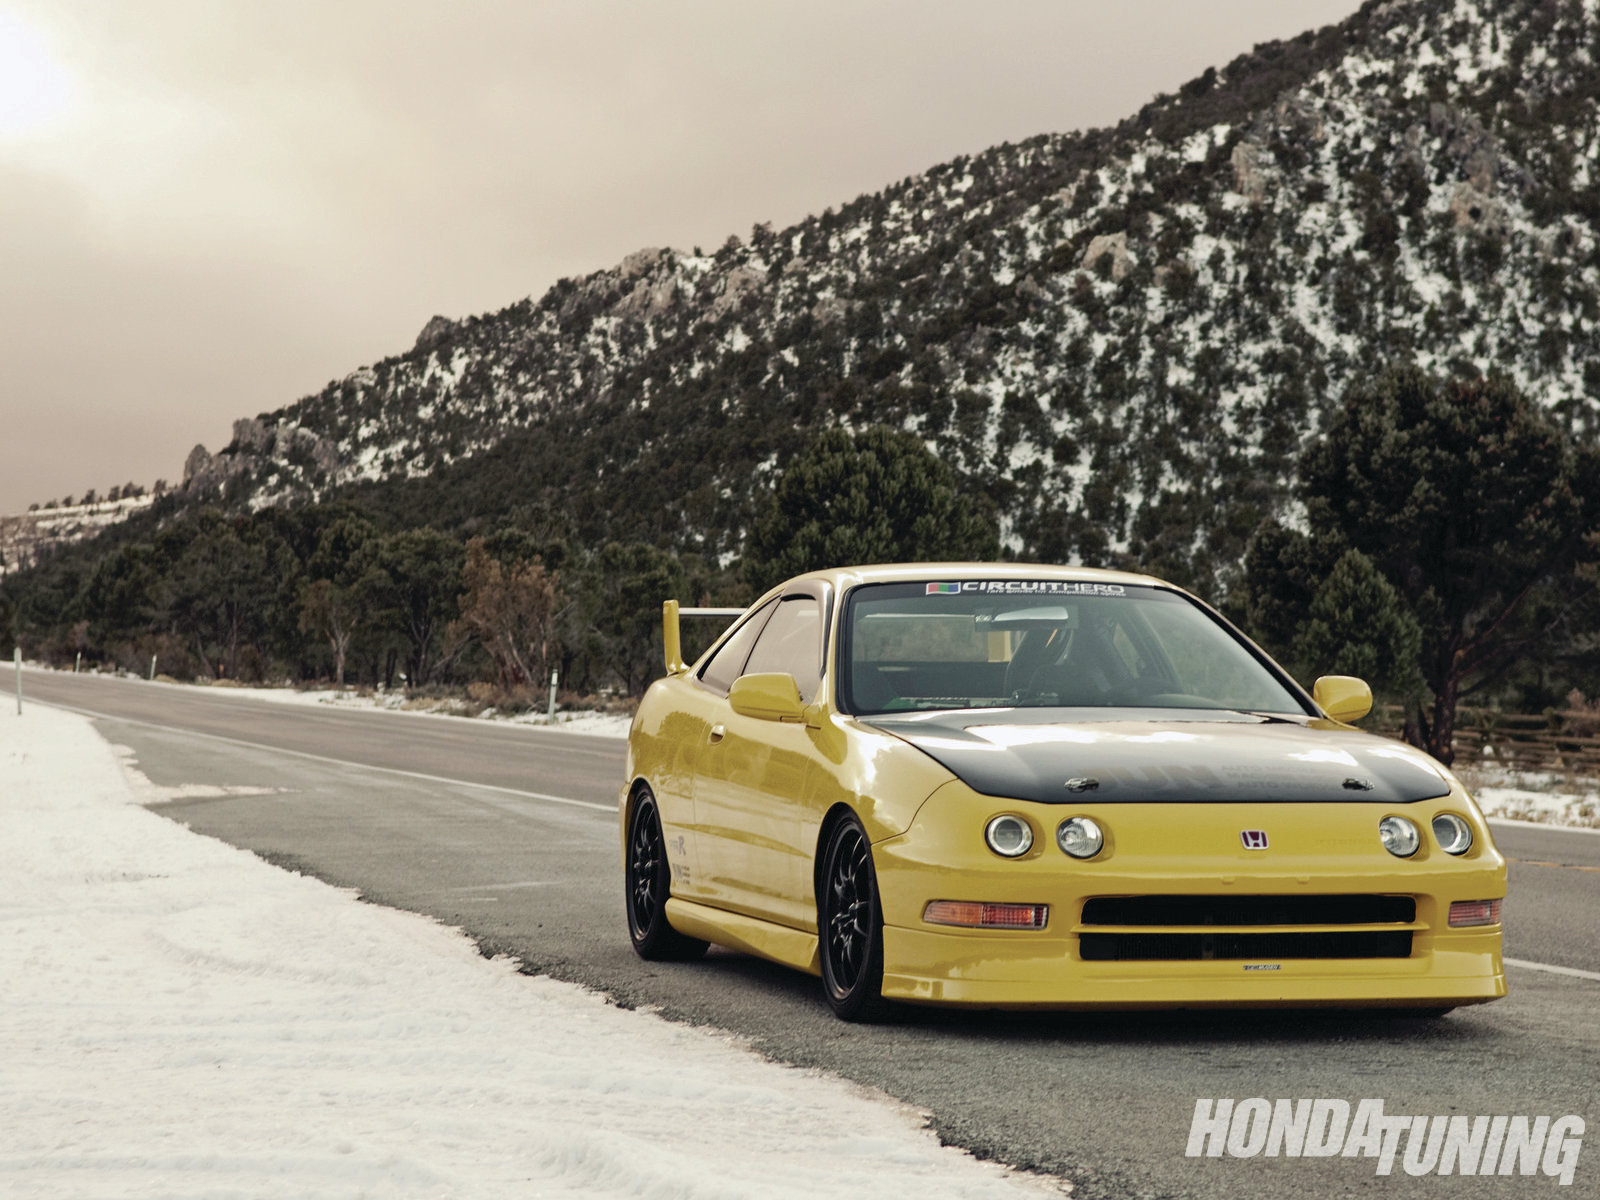 2001 Integra Typer R Creating A Monster Honda Tuning Magazine